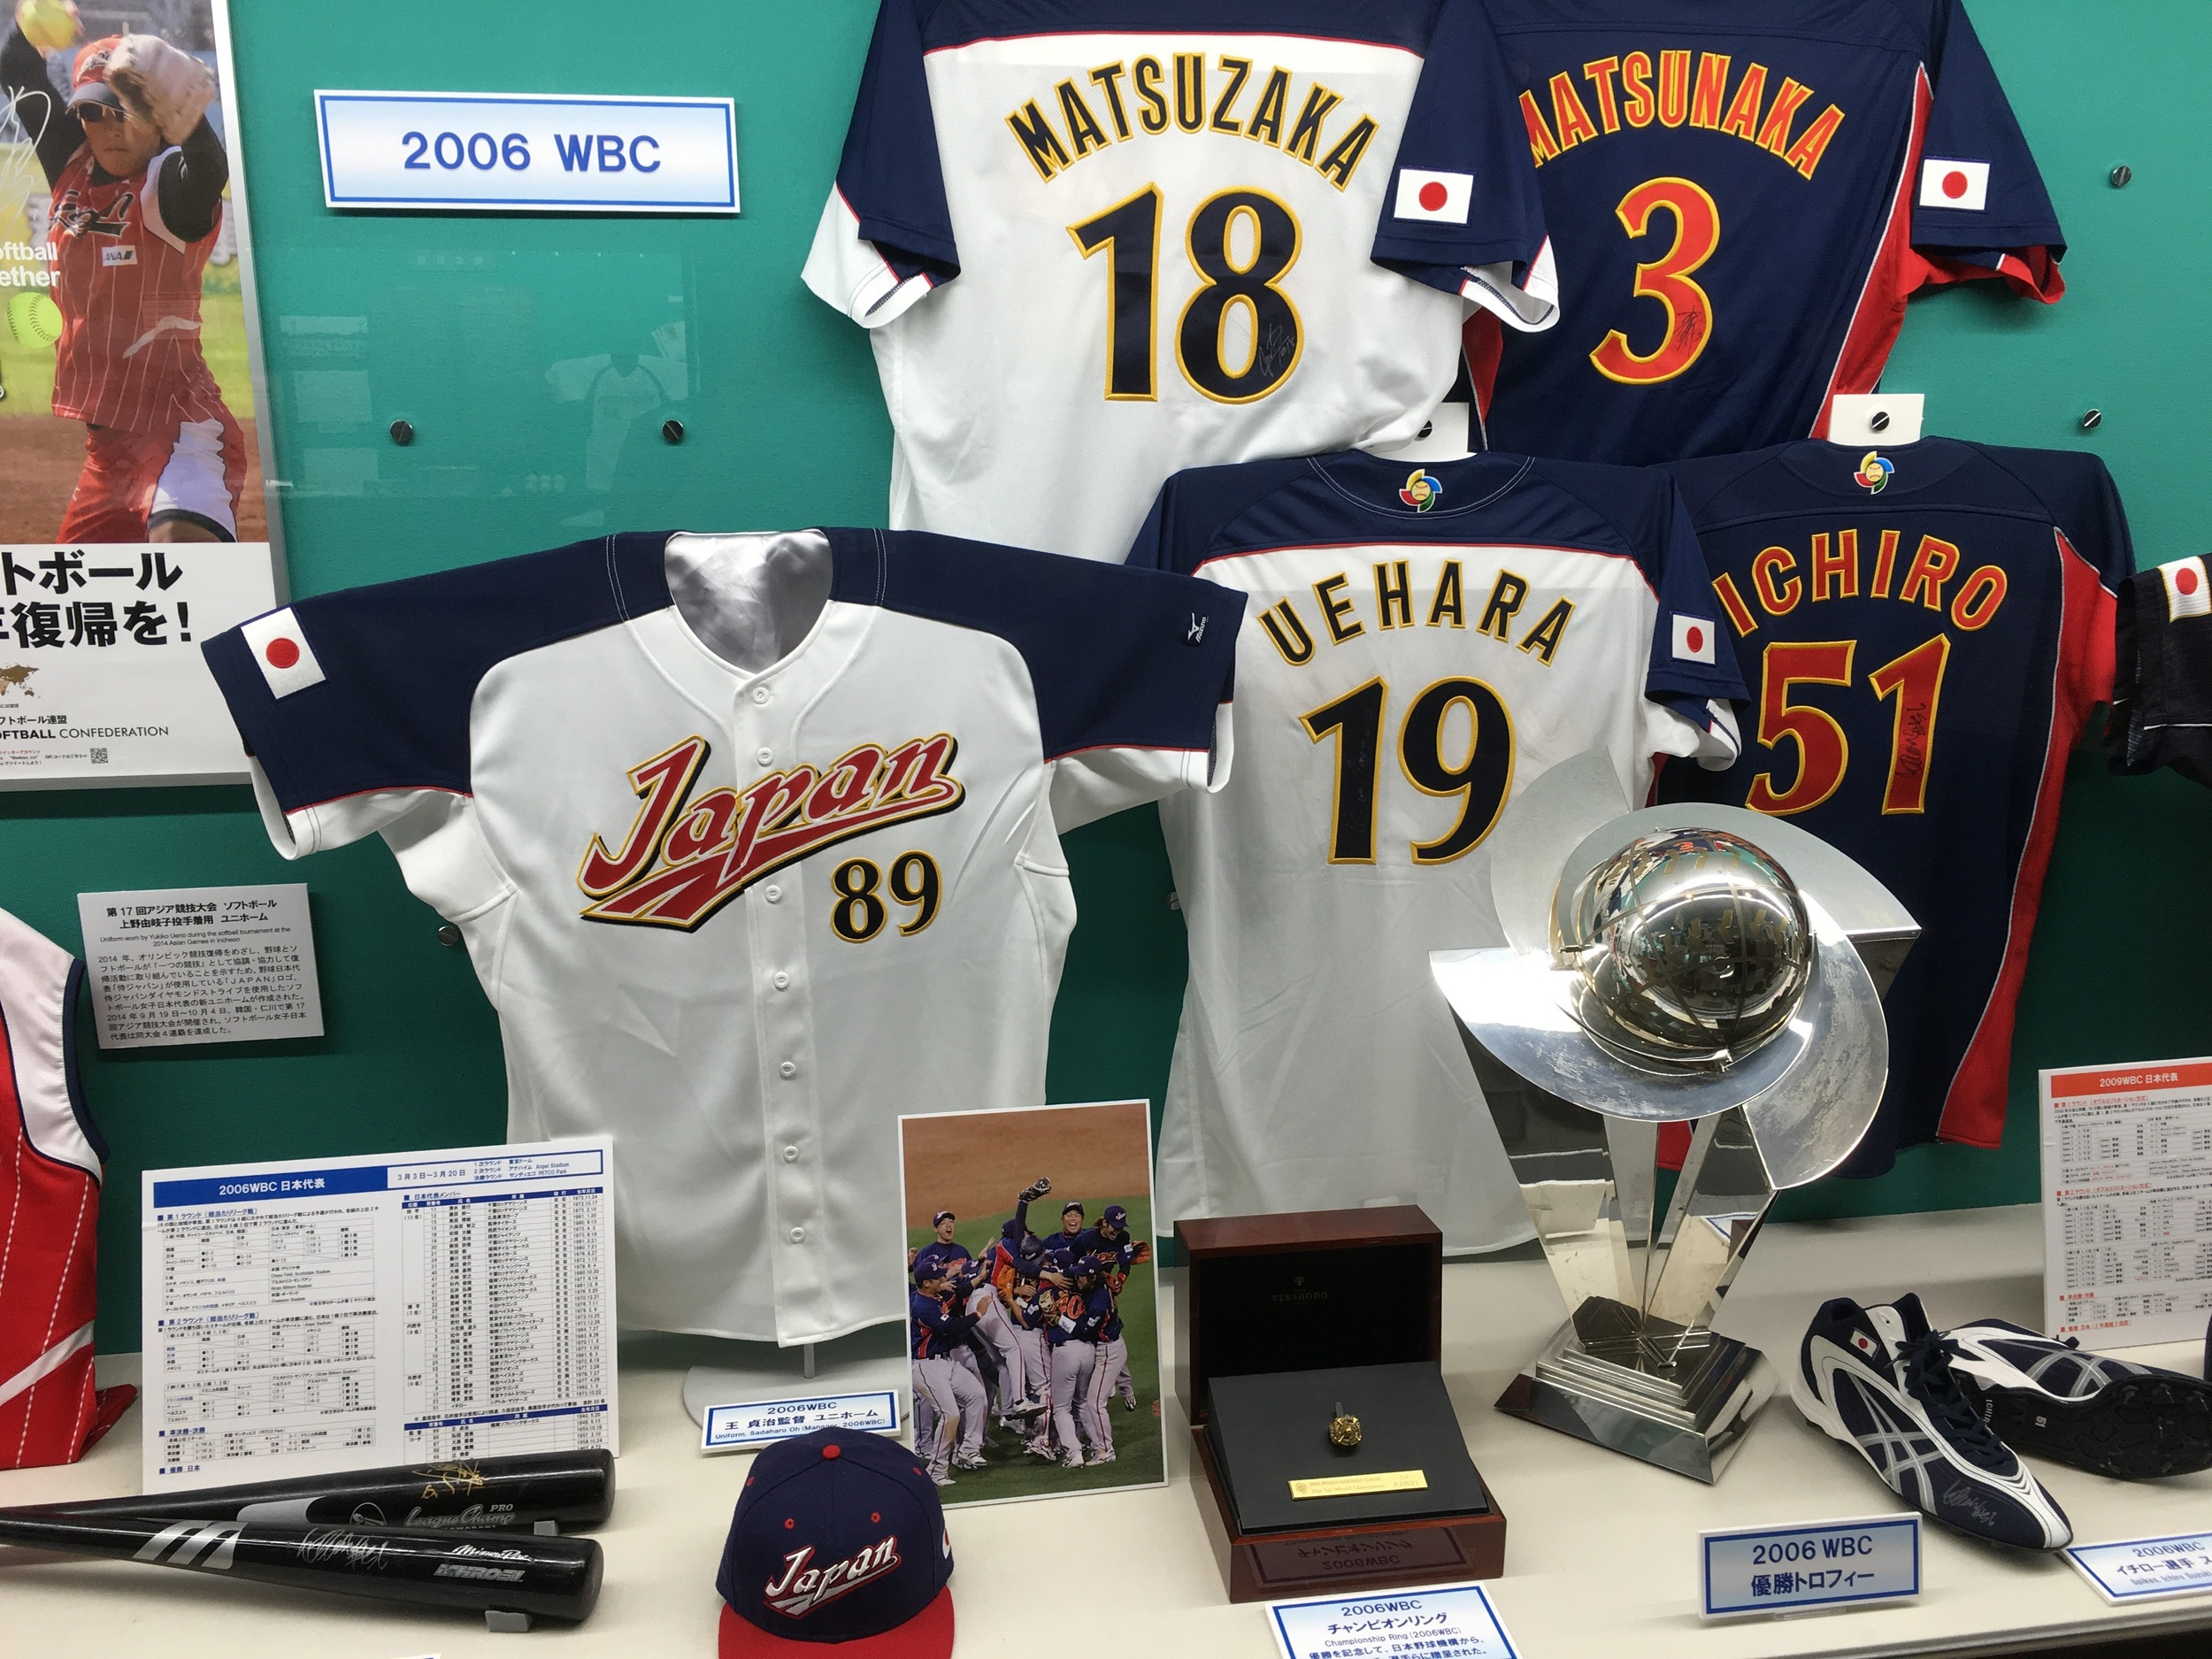 I wish the WBC was still popular. Watching Team Japan dominate the first few tournaments was a lot of fun.